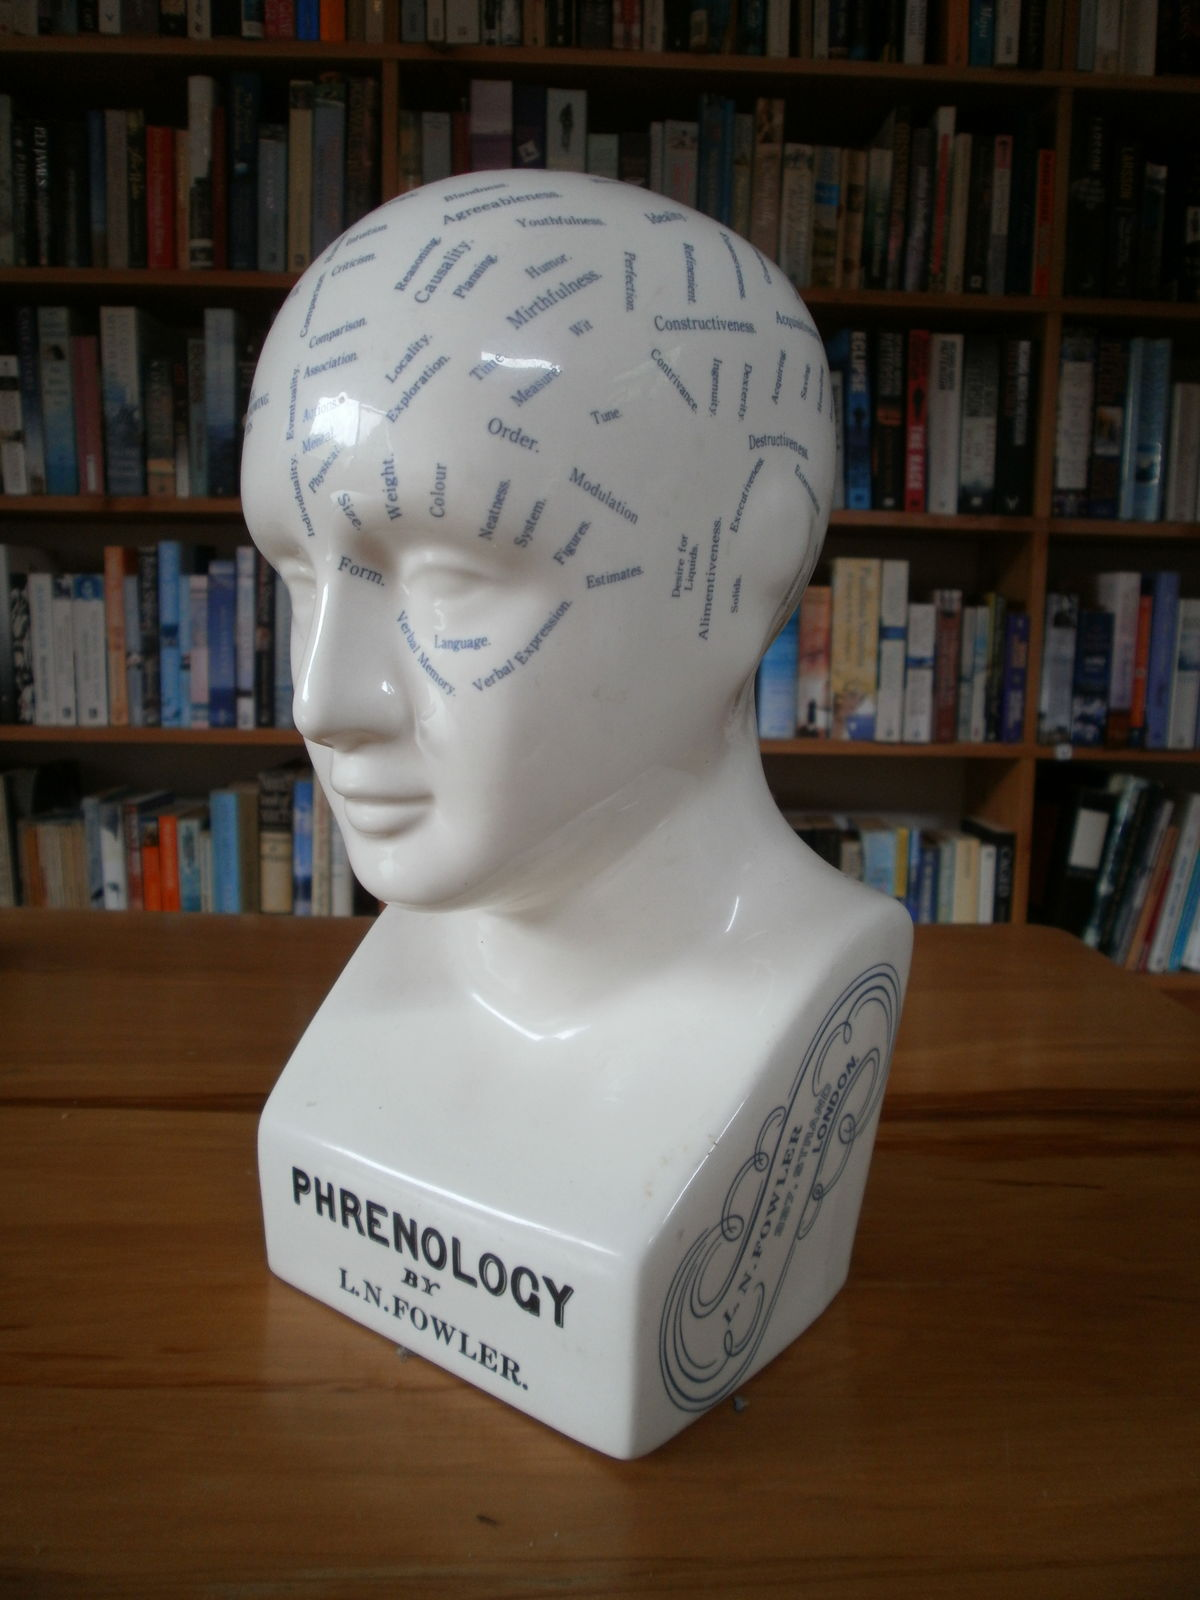 So You Want to Be a Neuropsychologist? | Psychology Today